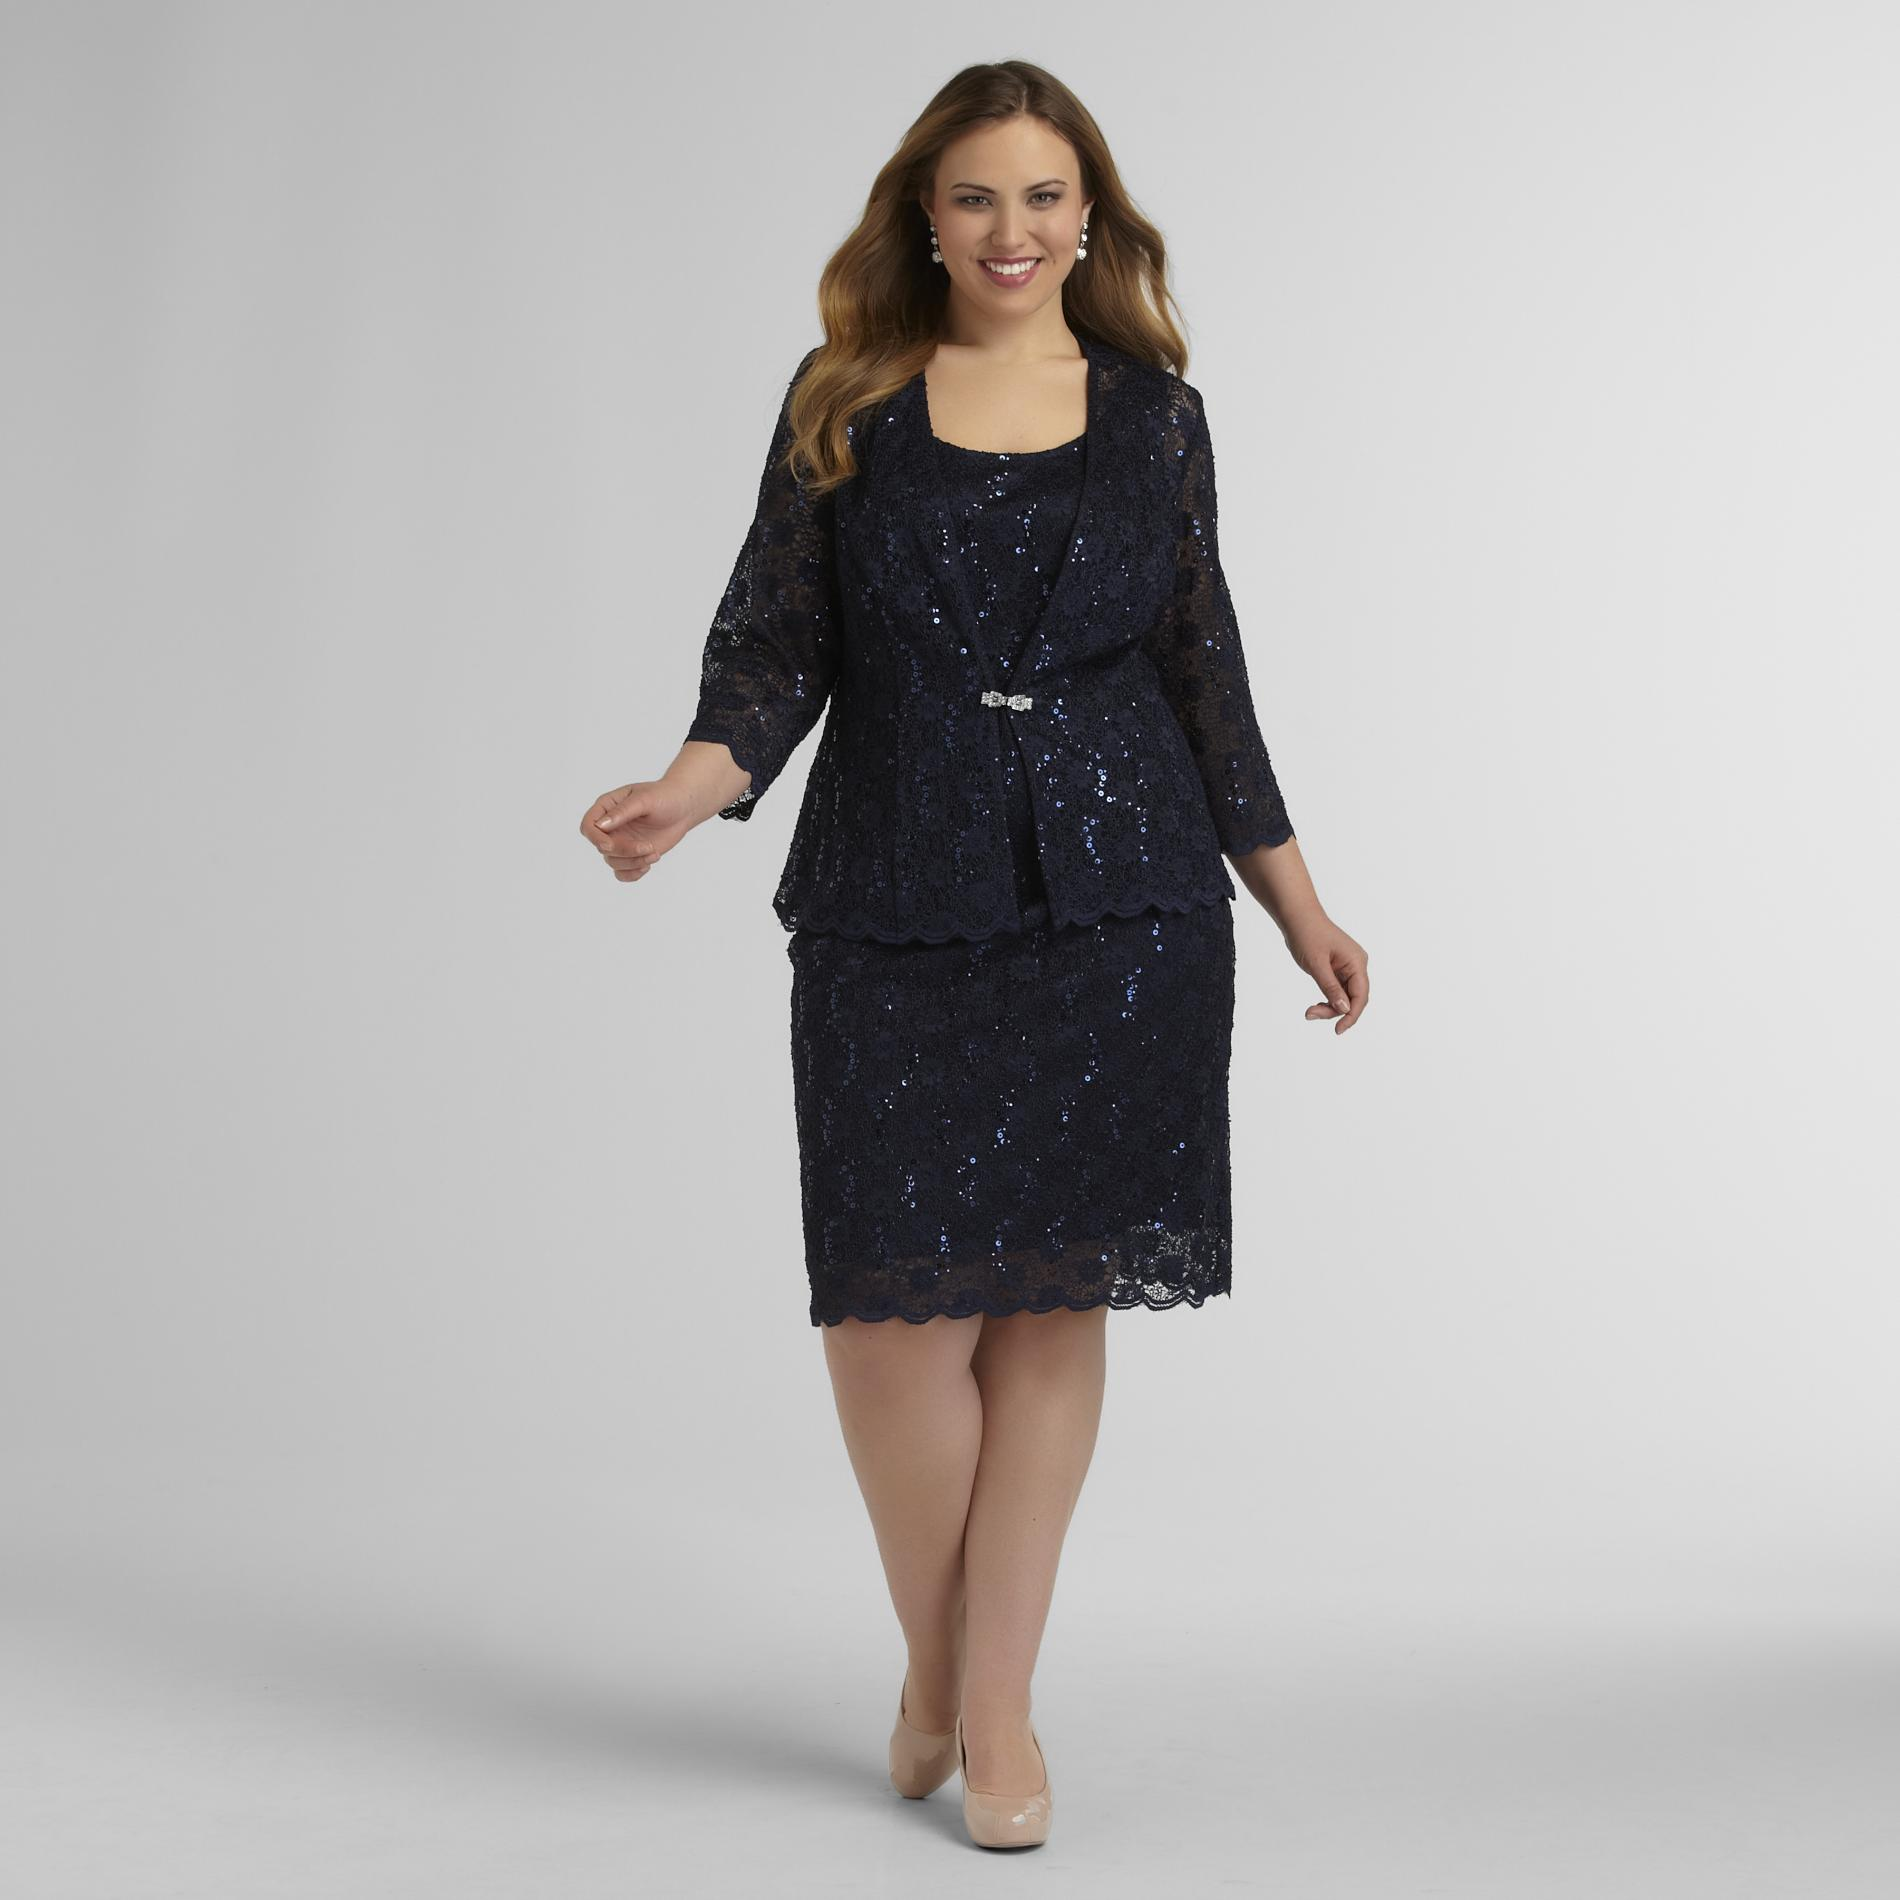 R & M Richards Women's Plus Lace Dress & Jacket - Sequins at Sears.com